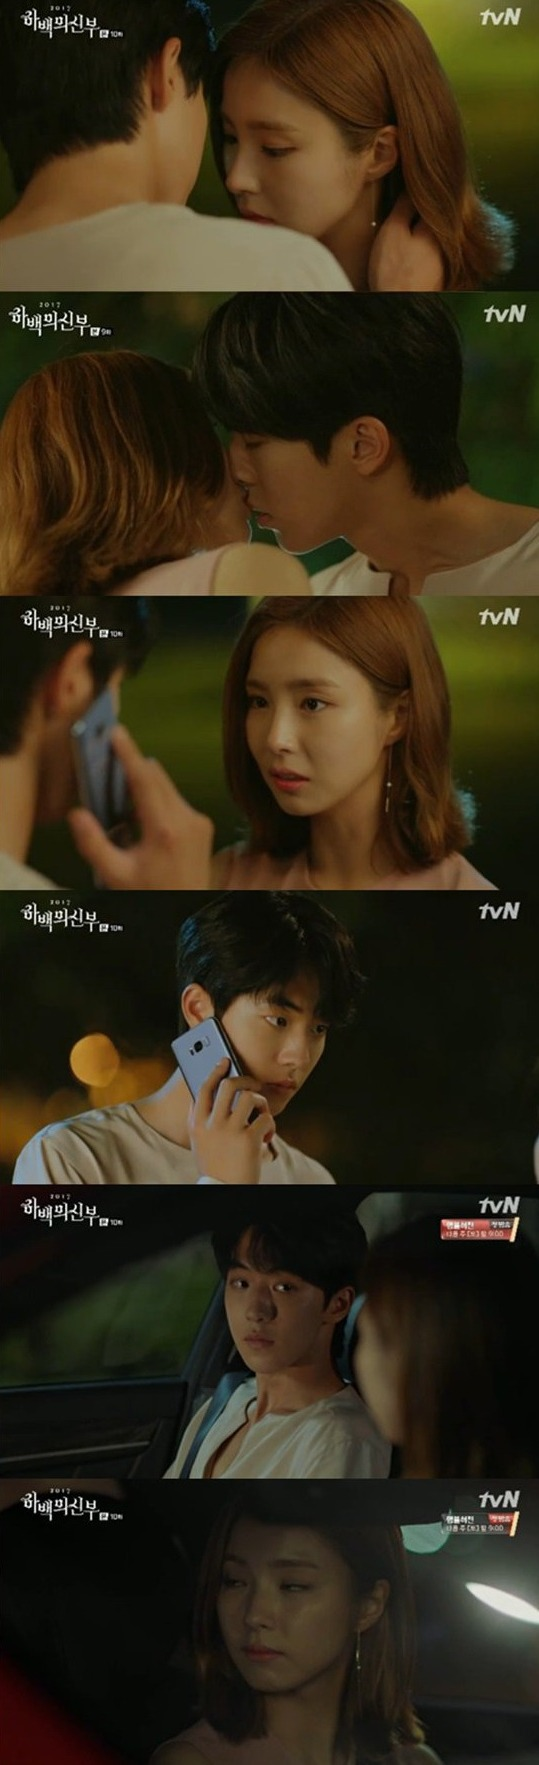 [Spoiler] Added episode 10 captures for the Korean drama 'Bride of the Water God 2017'